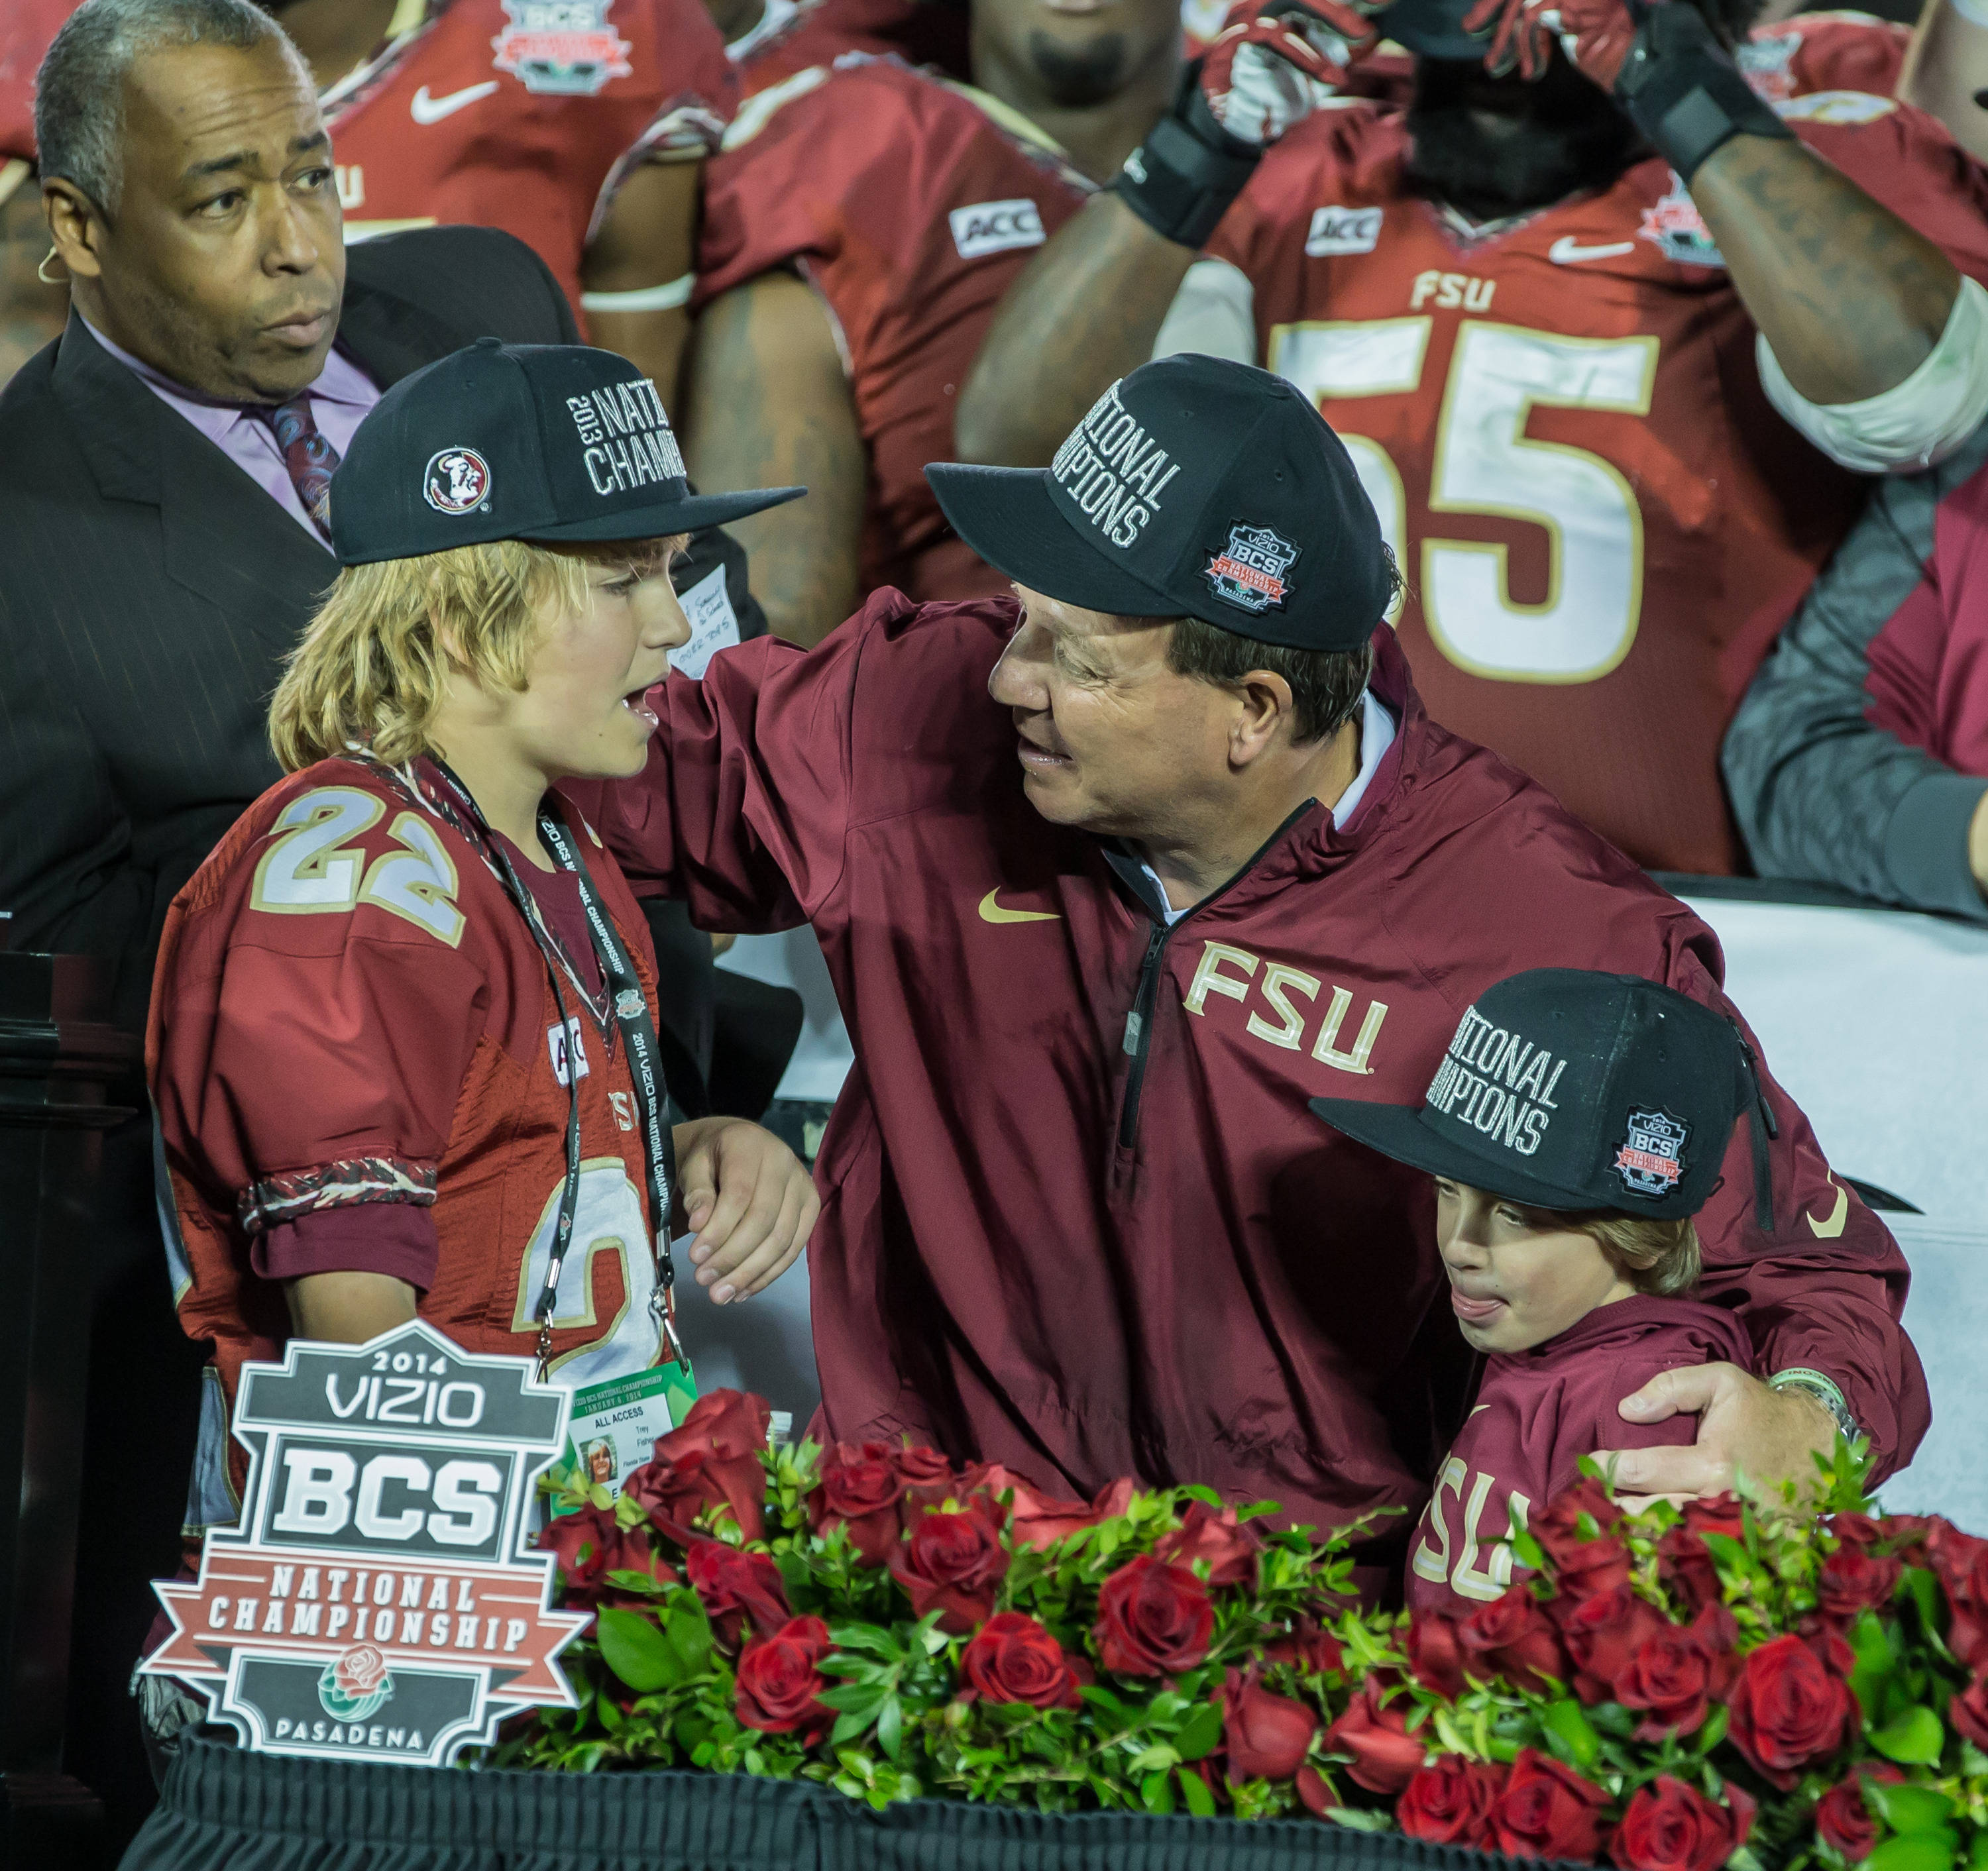 Jimbo Fisher shares a moment with his sons, Trey and Ethan, on the podium after winning the National Championship.